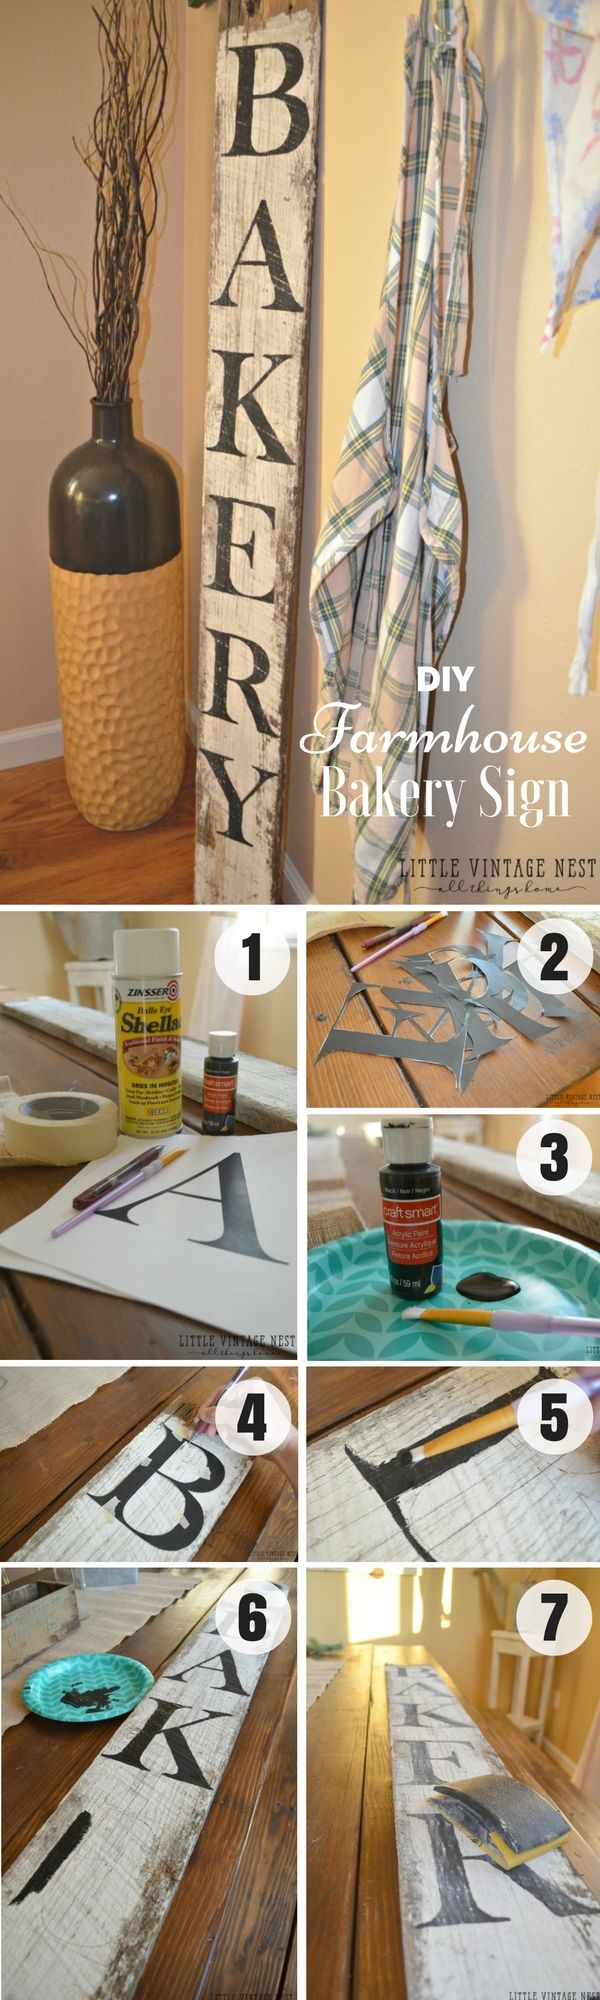 18 Easy DIY Farmhouse Signs You Can Make from Wood